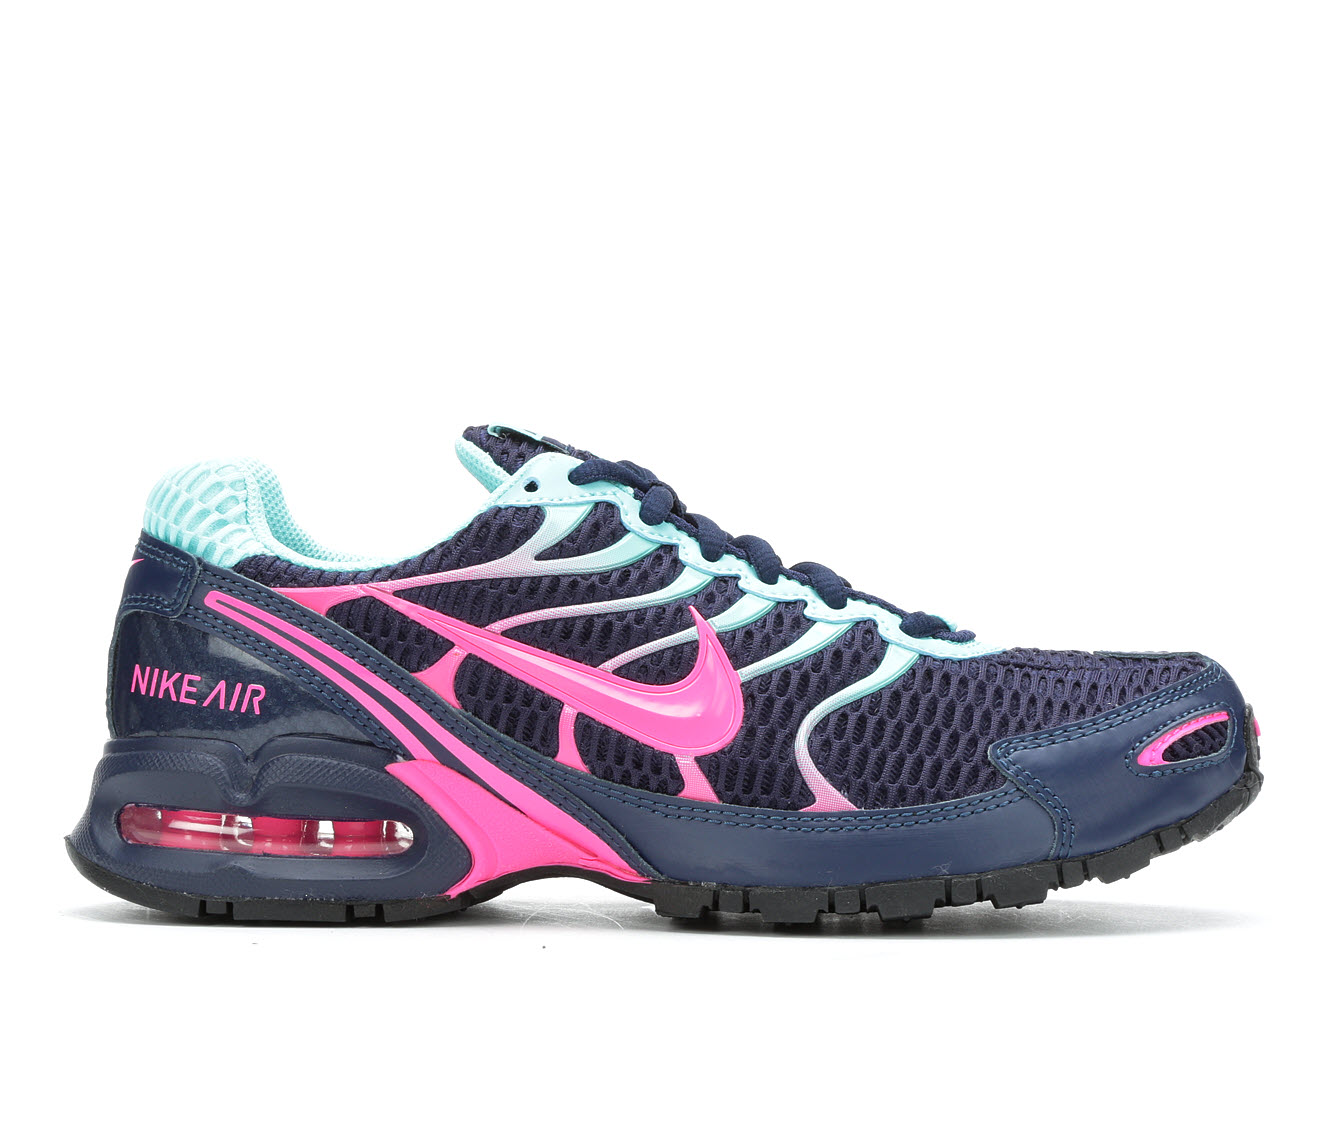 Nike Air Max Torch 4 Women's Athletic